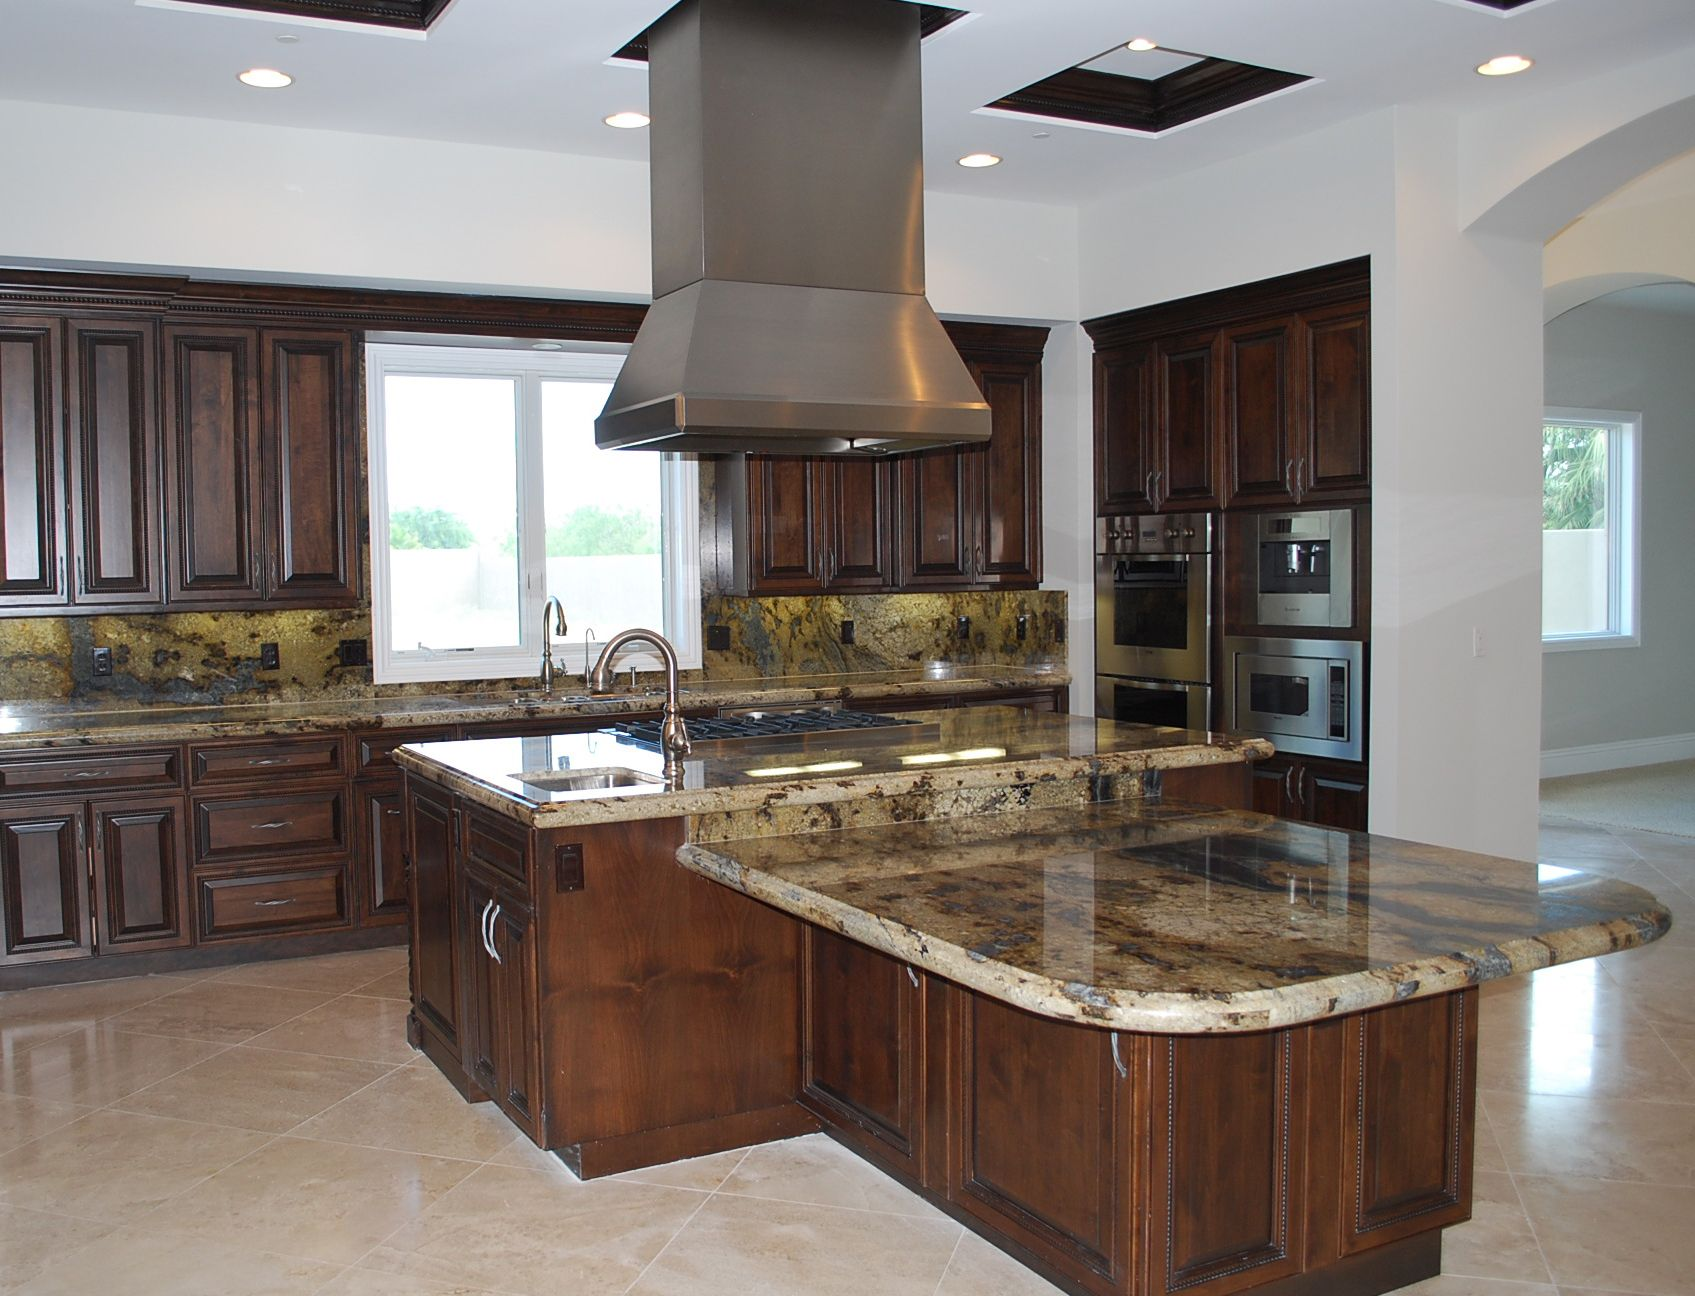 Majestic Cabinets Llc Las Vegas Nv 89104 Homeadvisor Kitchen Cabinets And Granite Fancy Kitchens Kitchen Cabinets And Countertops